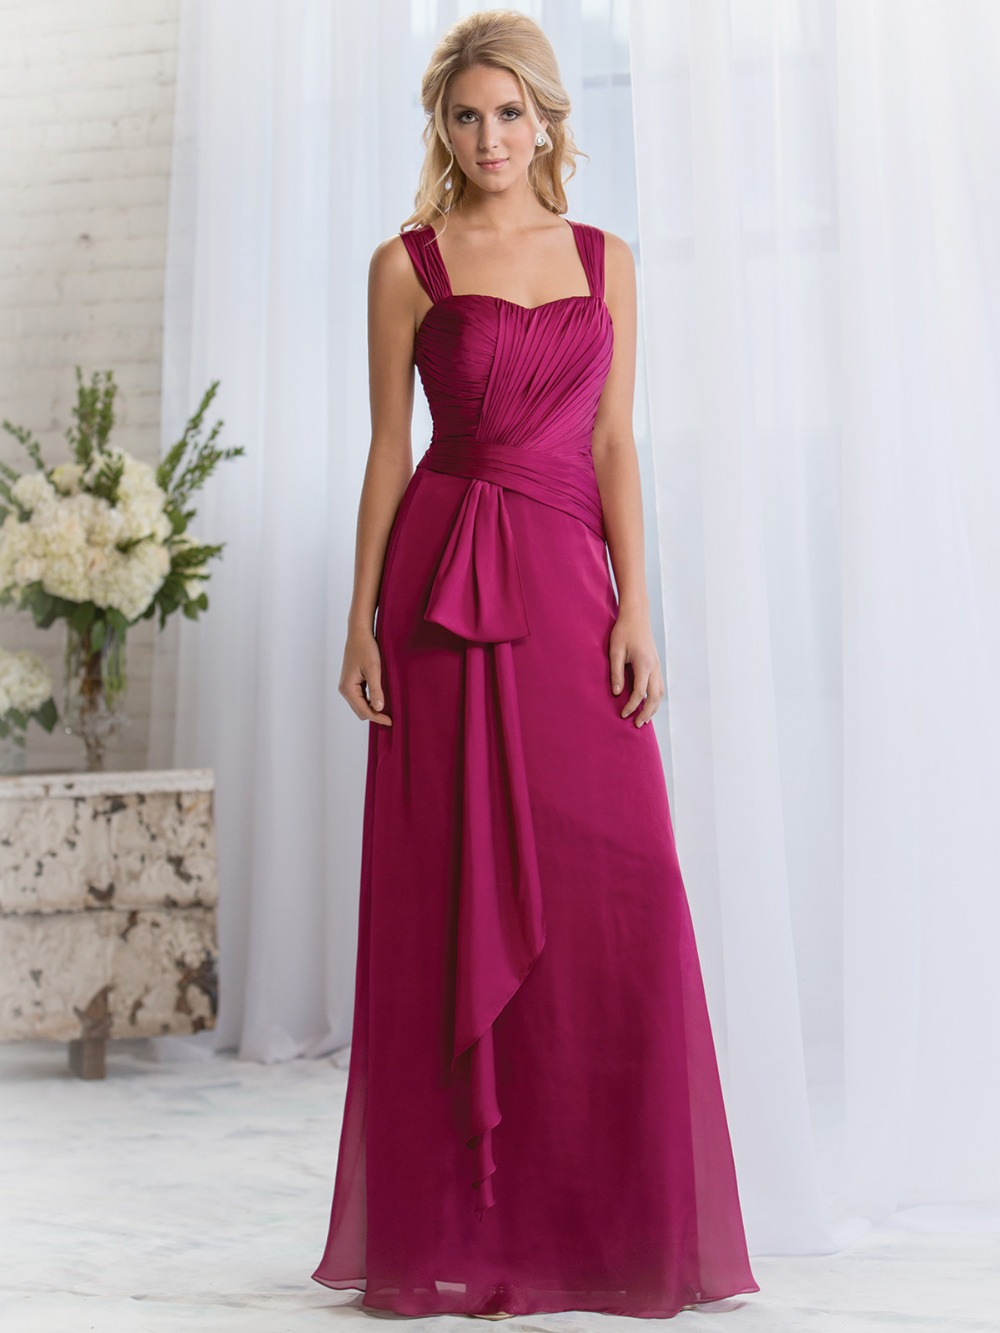 Fashionable simple long fuchsia bridesmaid dresses wide straps fashionable simple long fuchsia bridesmaid dresses wide straps pleated party dress for wedding vestido madrinha longo xhb10 in bridesmaid dresses from ombrellifo Image collections